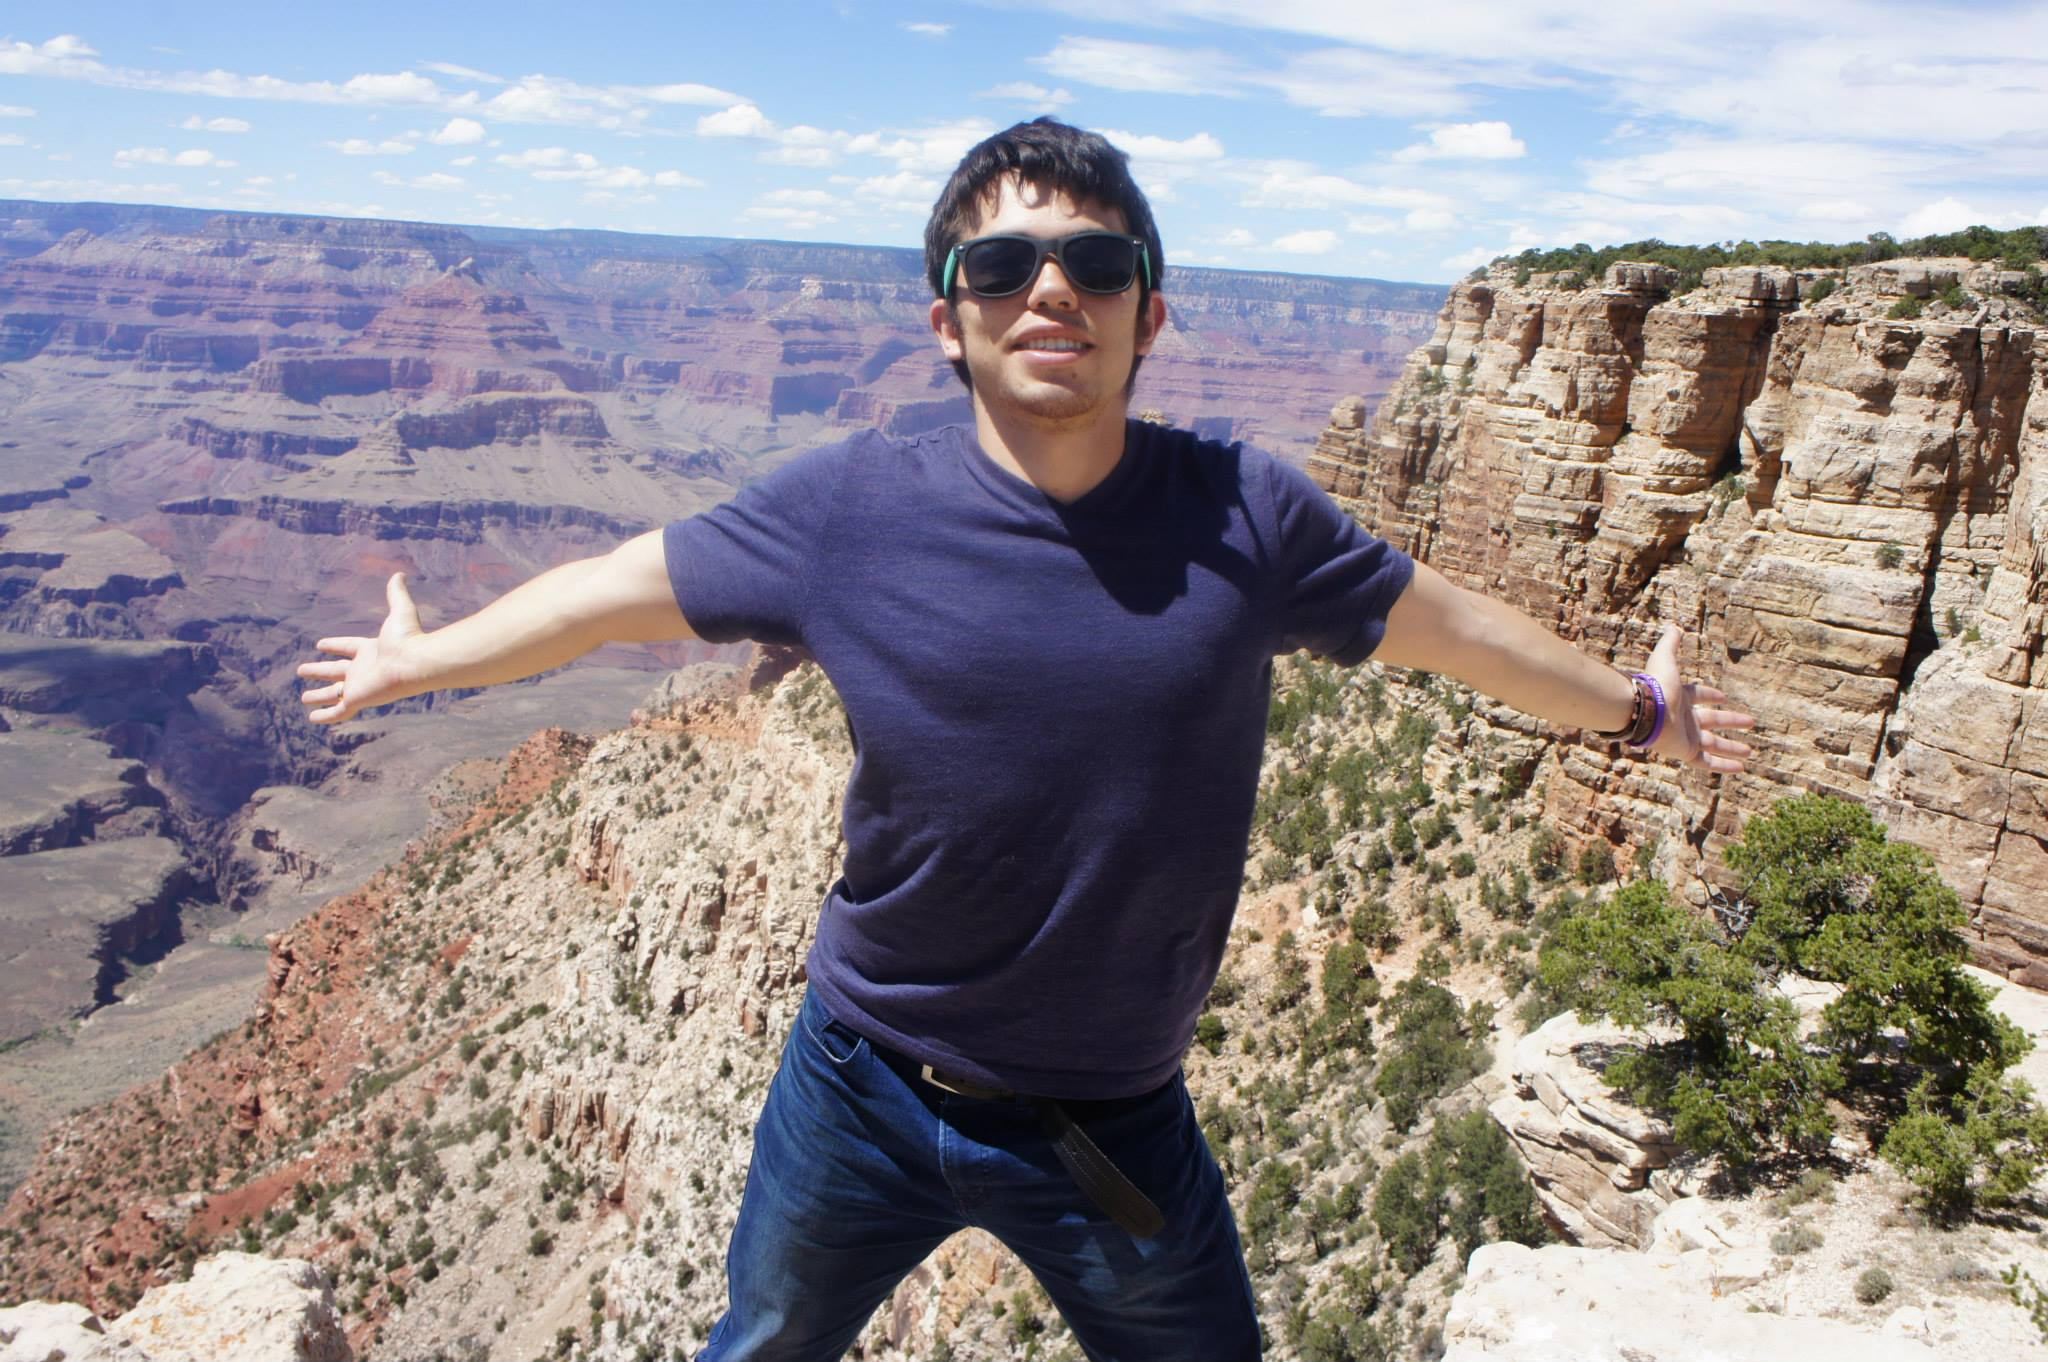 Justin at the Grand Canyon while on a road trip with friends to see the country.